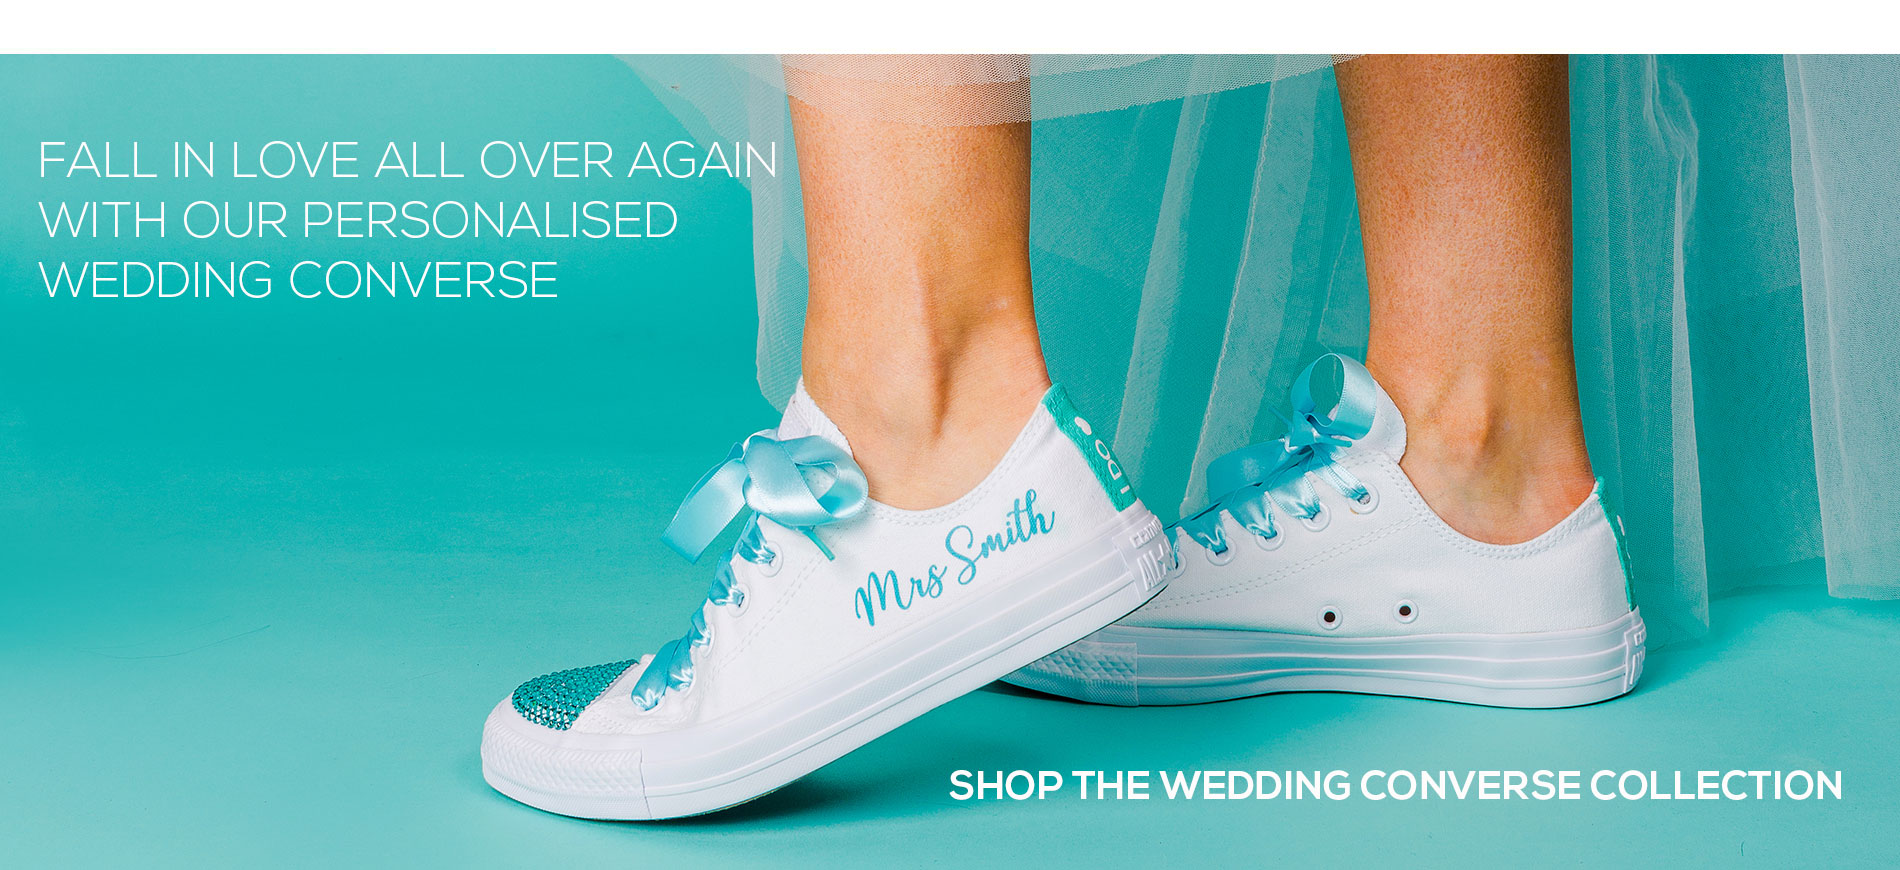 personalised-wedding-converse-1